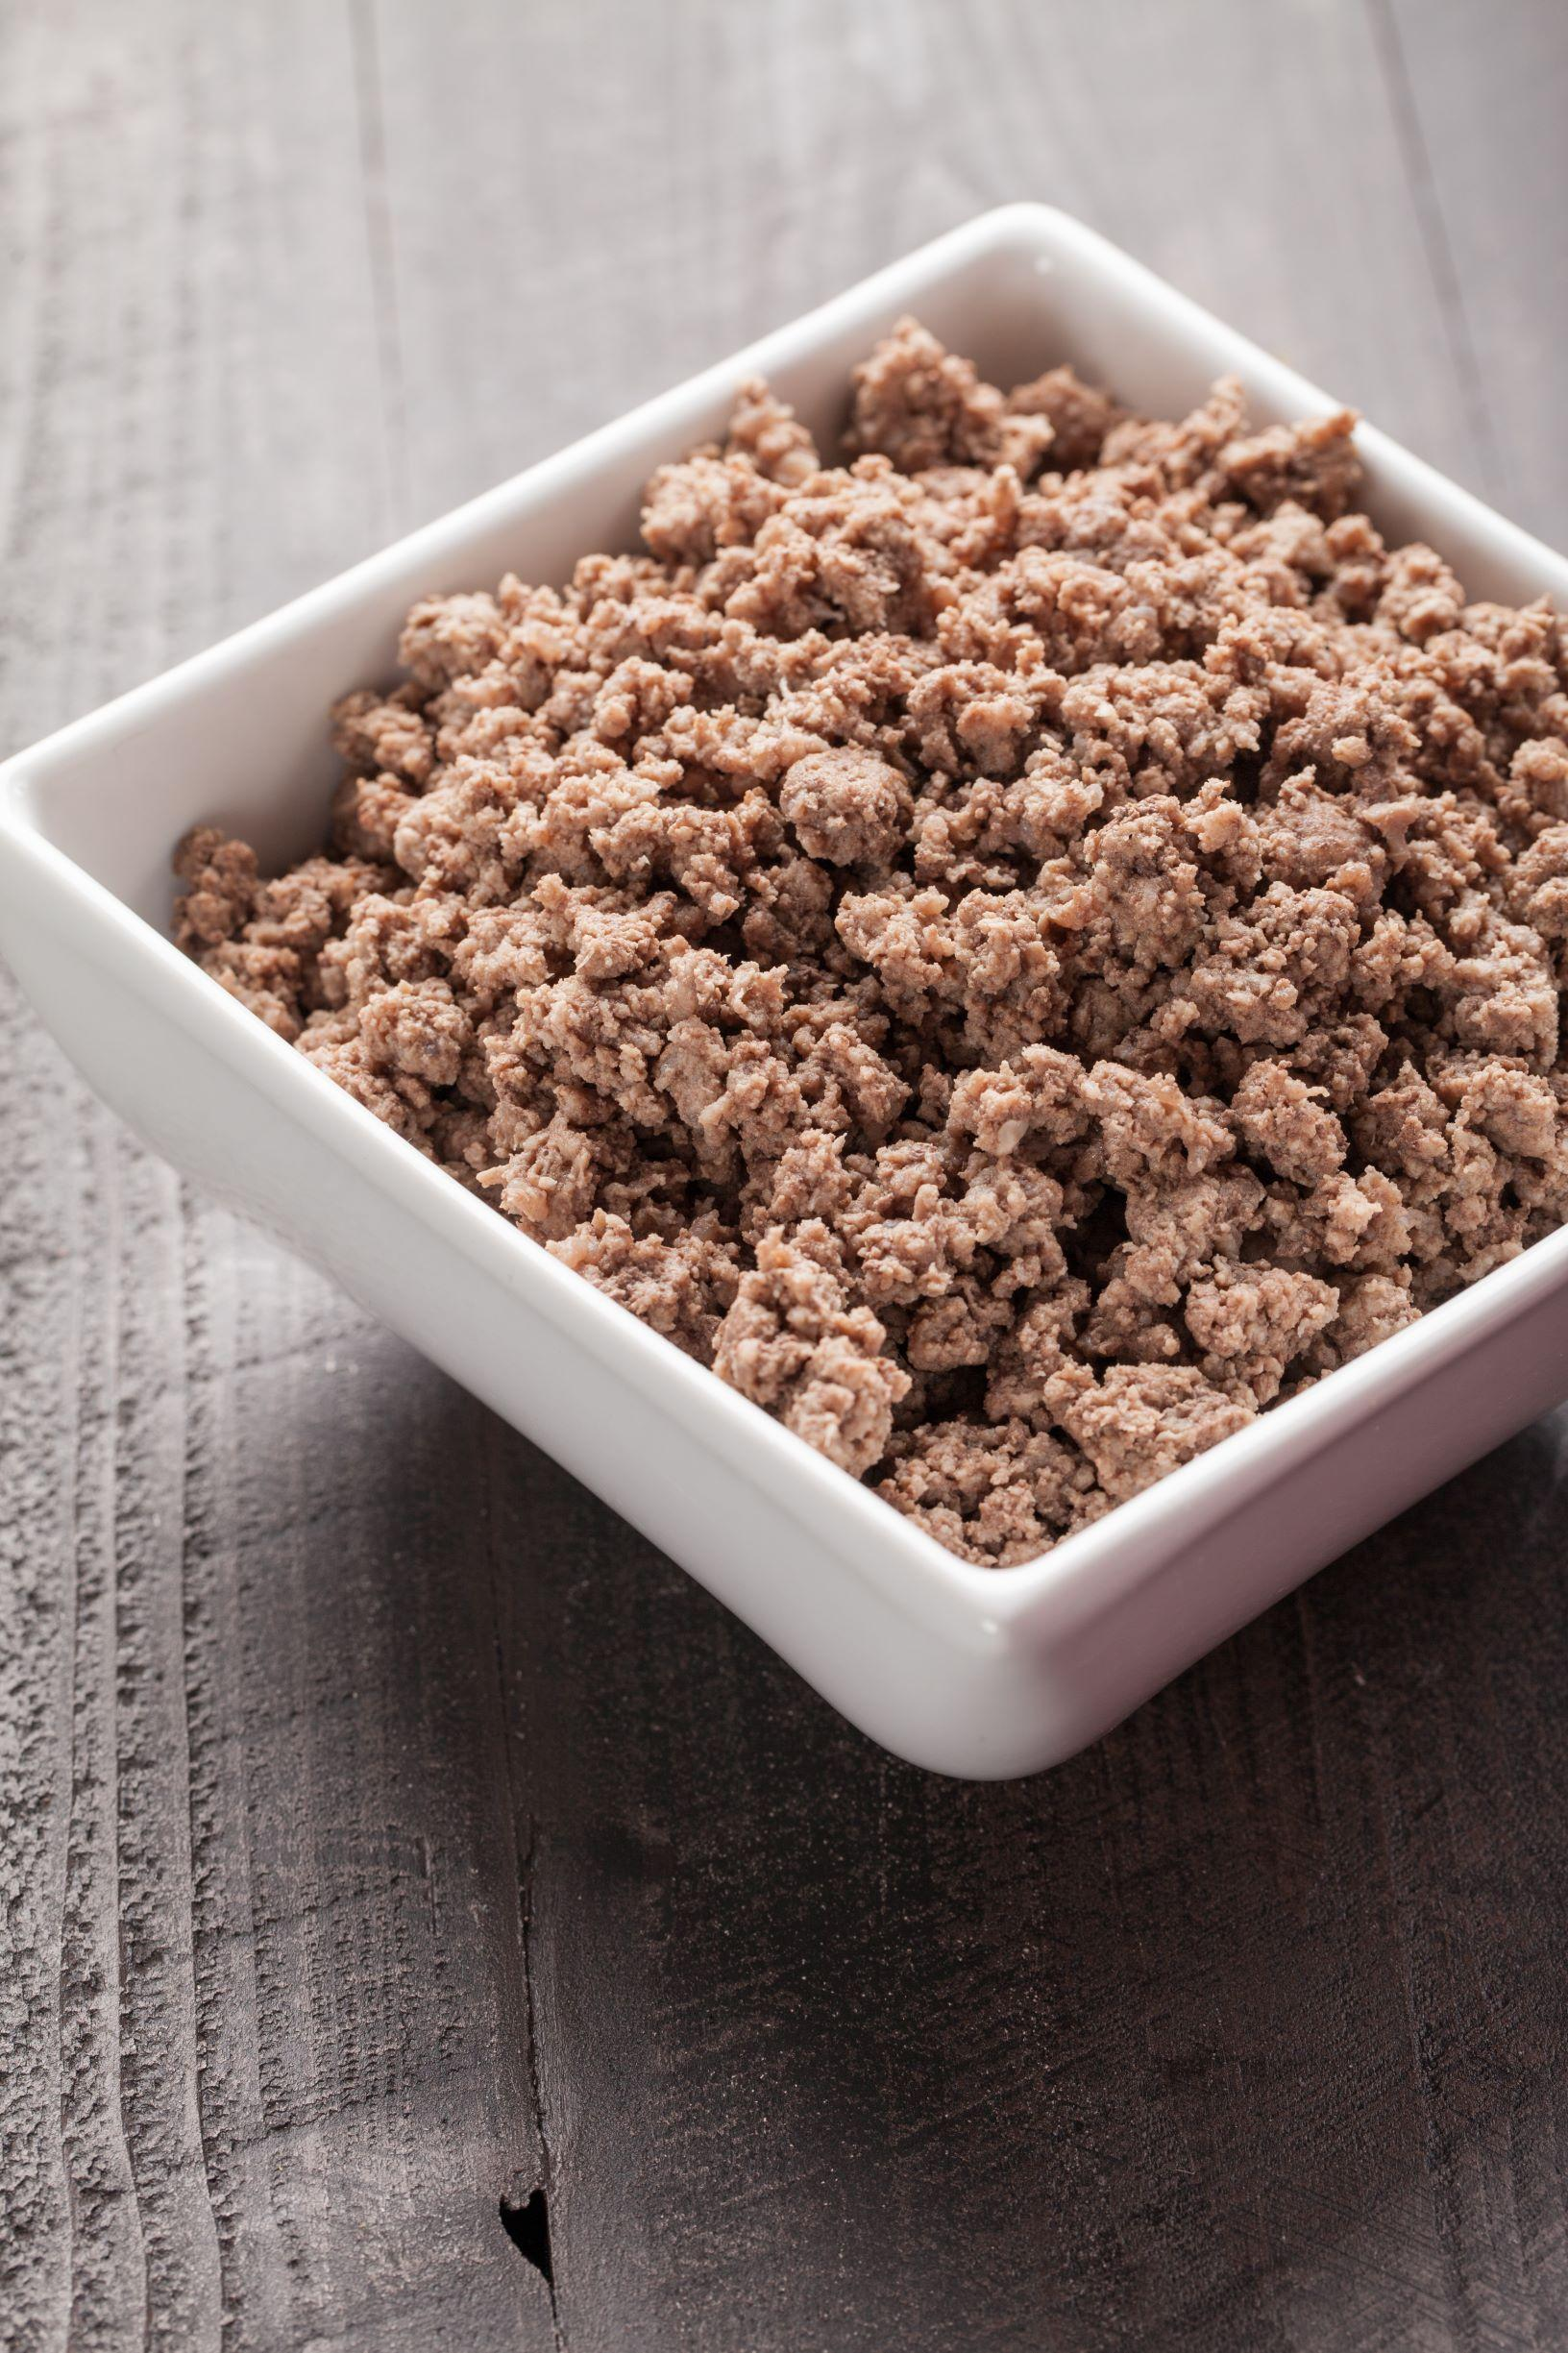 Thaw Ground Beef Safely | Food Hero